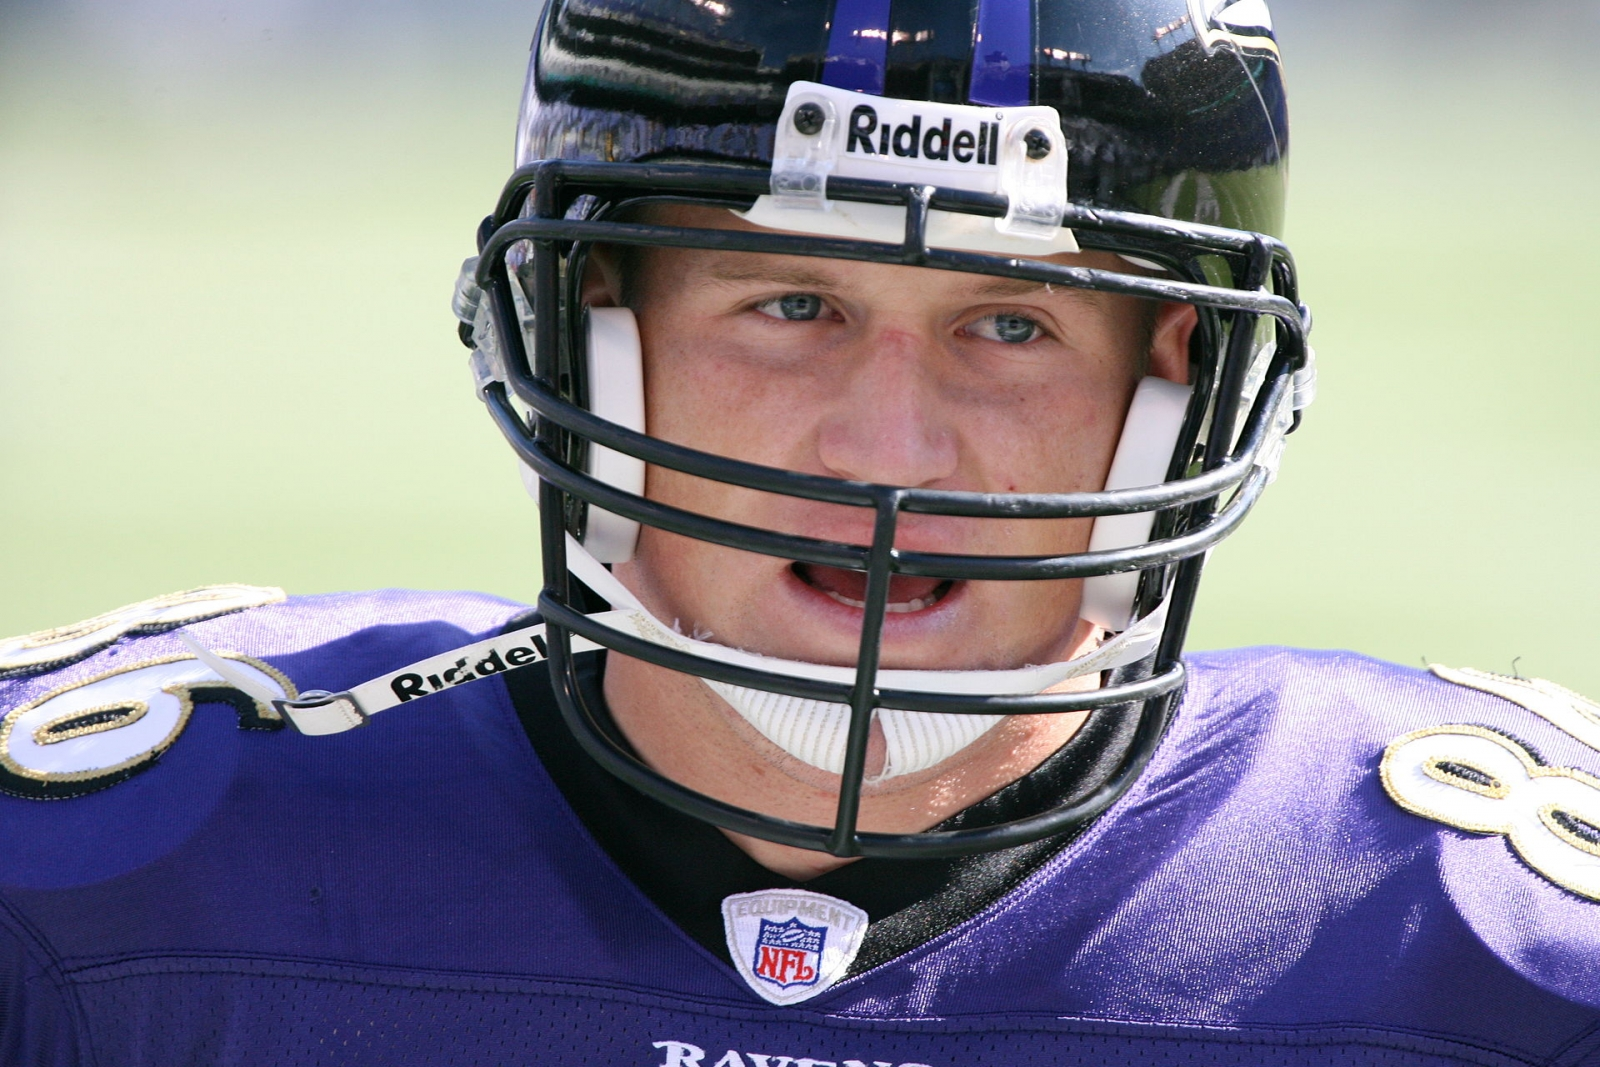 Former NFL player Todd Heap was involved in a tragic accident